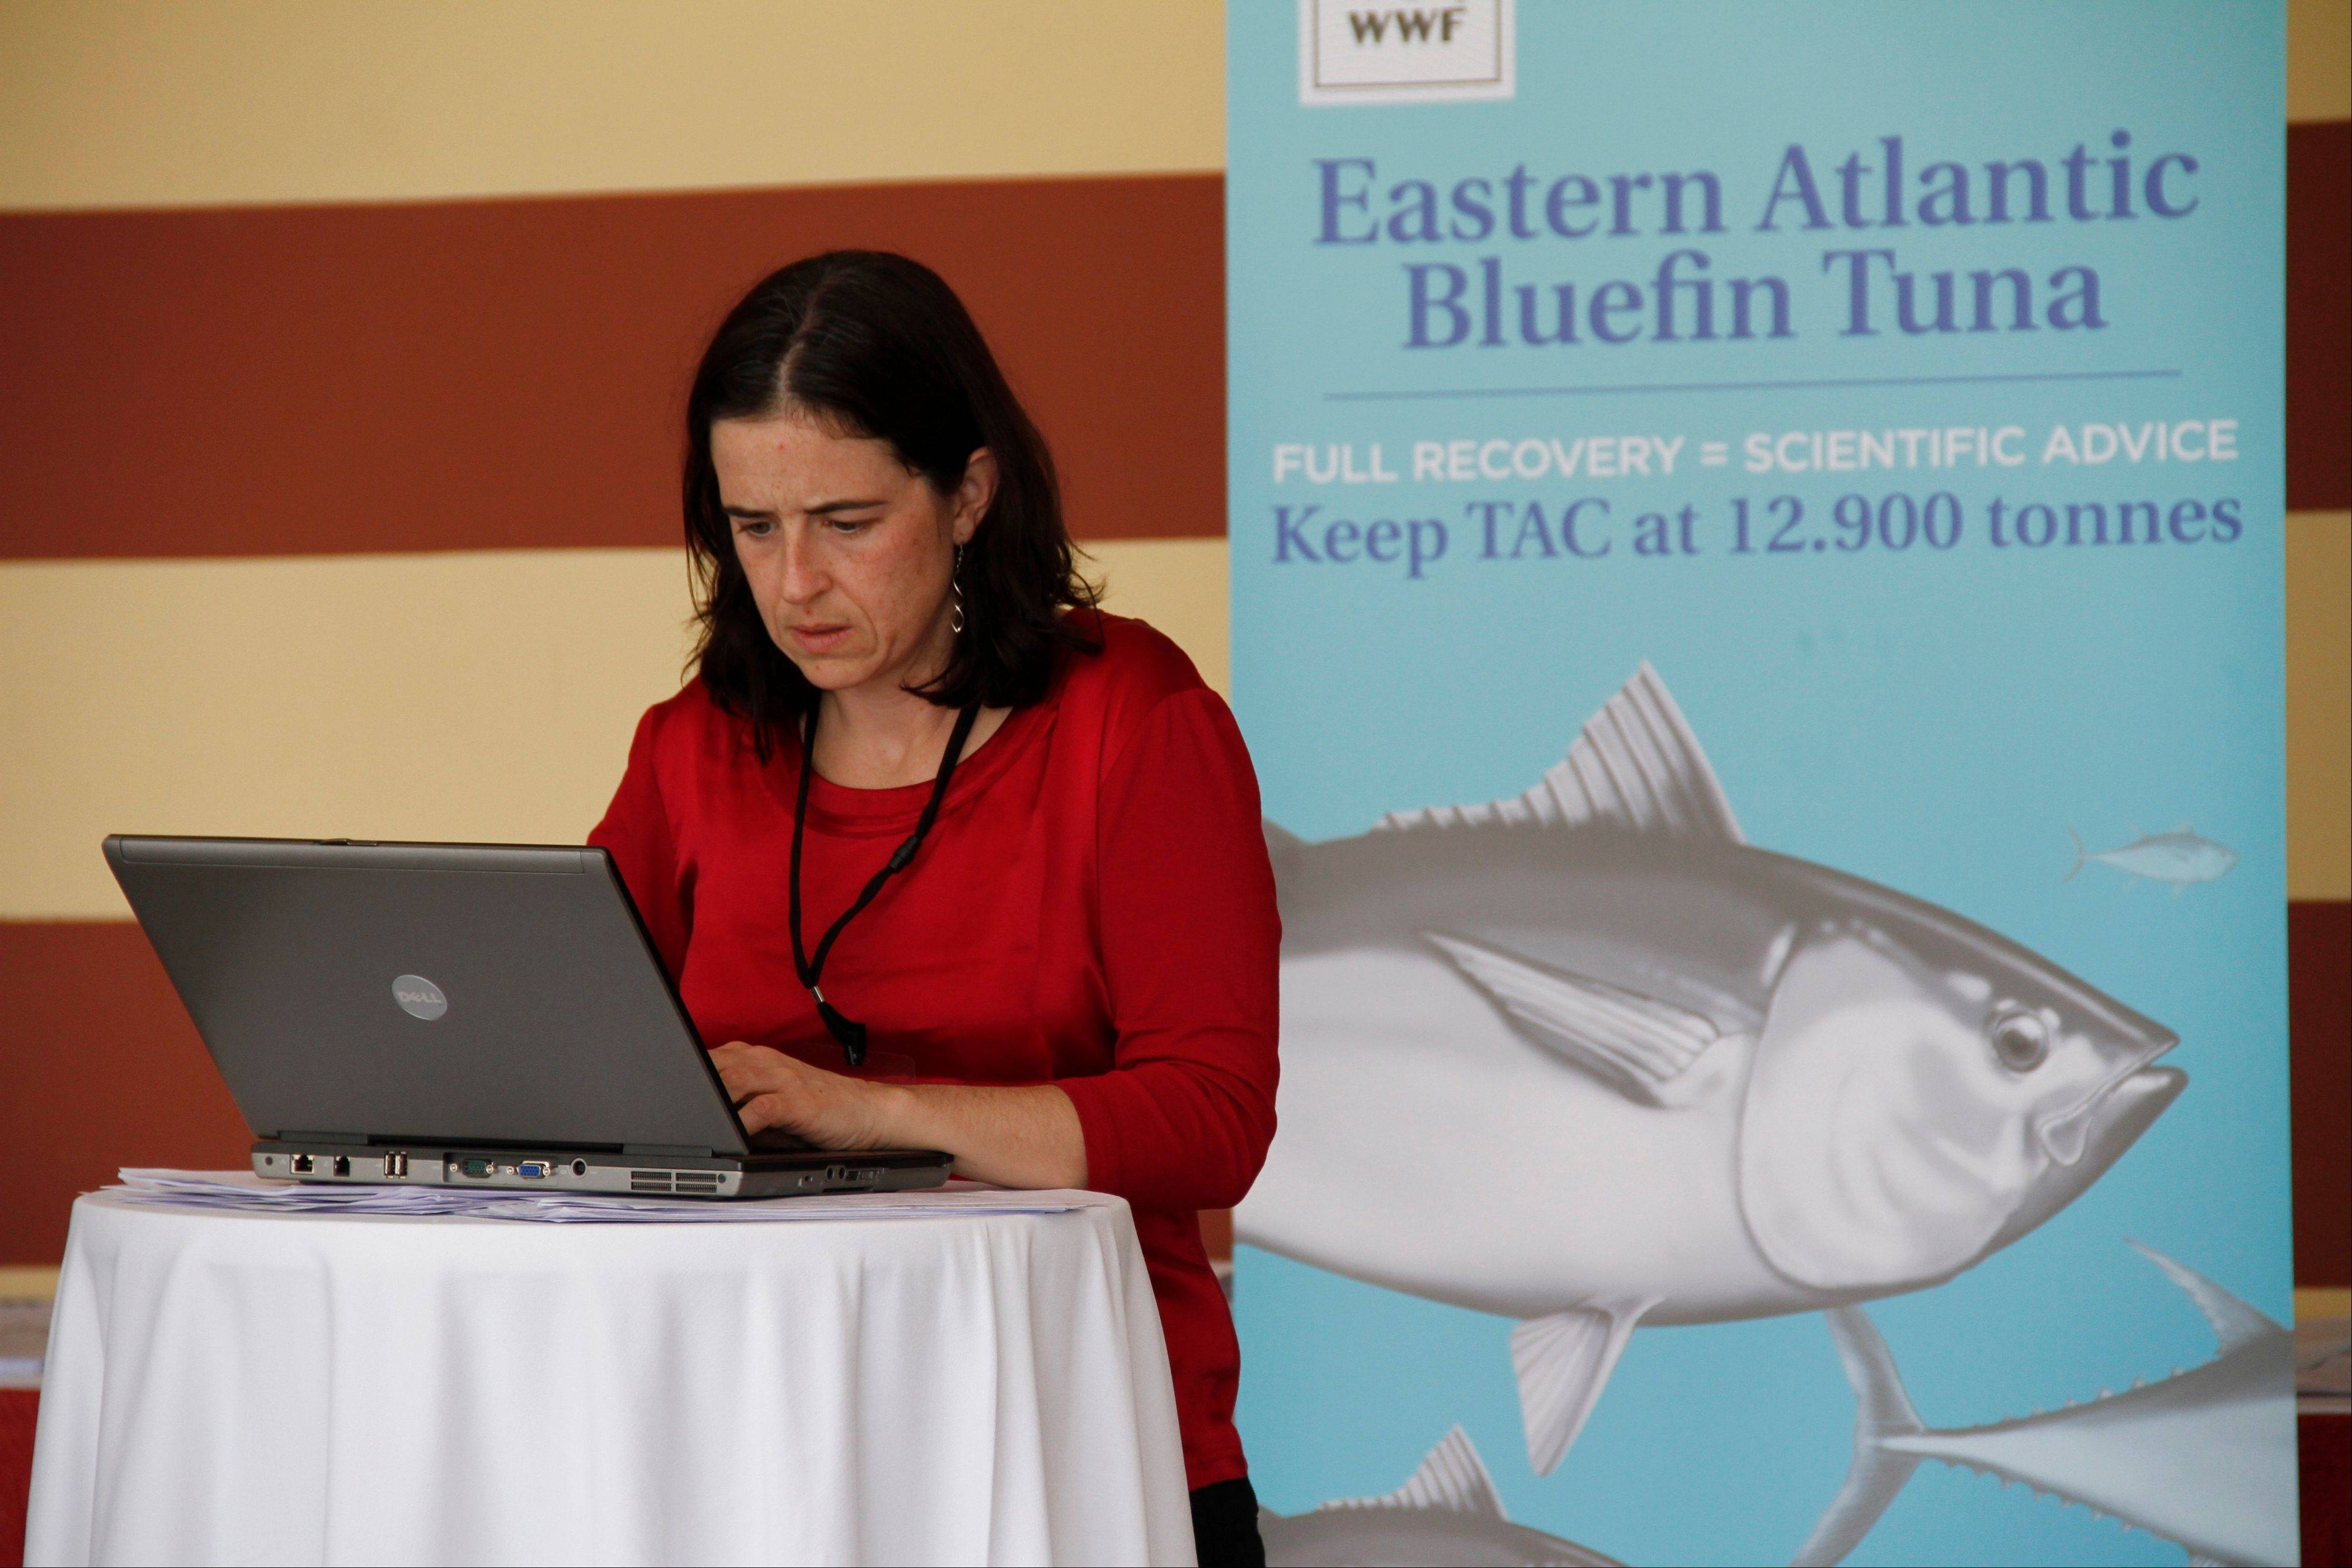 Shark expert Allison Perry of Oceana Europe works on her computer outside the conference for the 18th meeting of the International Commission for the Conservation of Atlantic Tuna in Agadir, Morocco, which declined to put in new protections for endangered shark populations on Monday. Member nations of the fisheries group did agree to maintain strict quotas to stop overfishing of severely depleted bluefin tuna stocks.